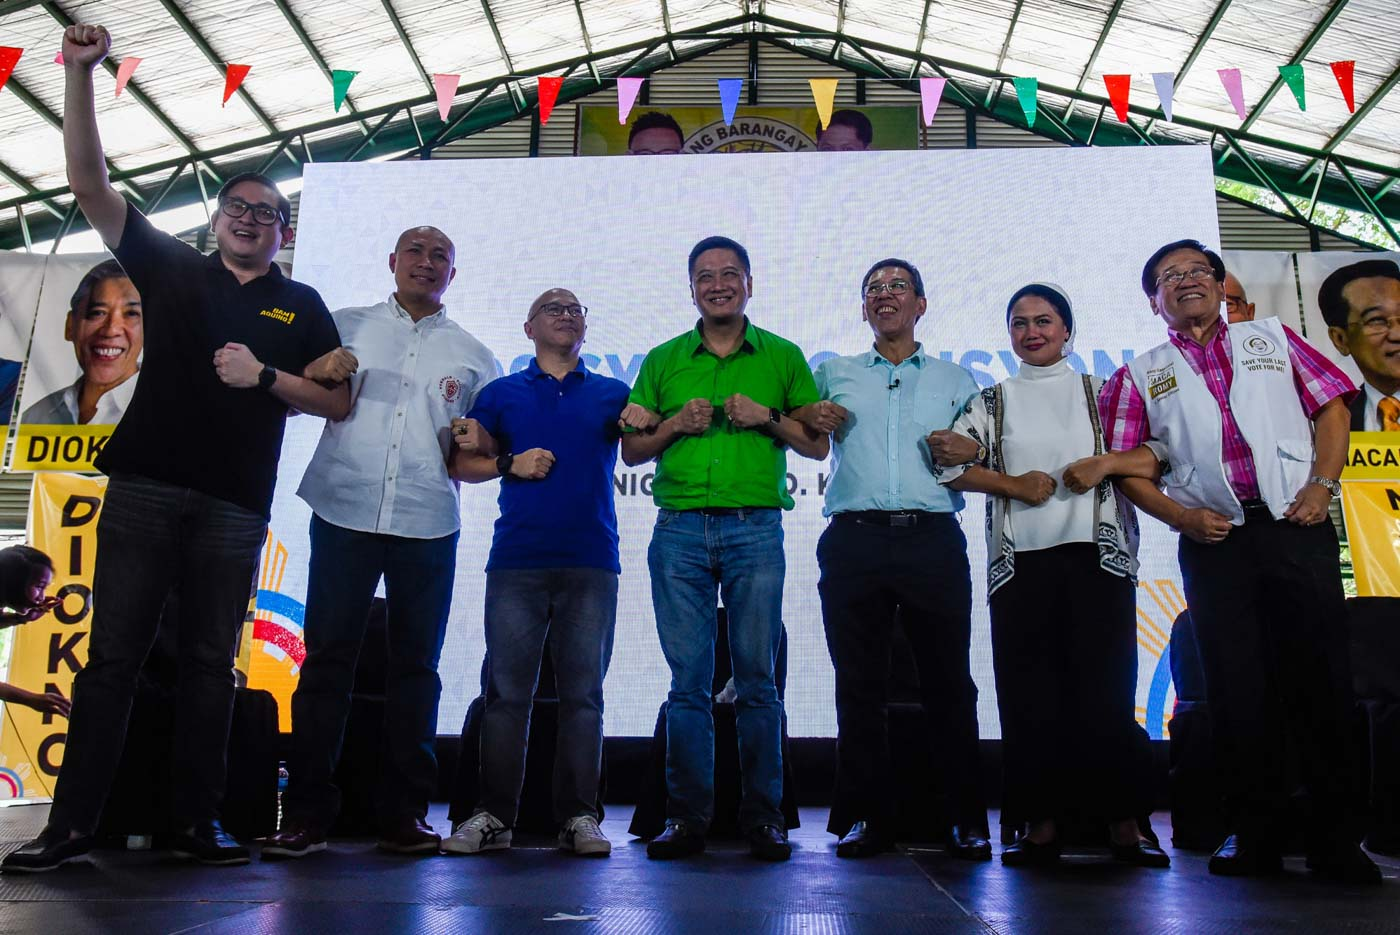 SEASON OF RALLIES. The opposition coalitionu2019s presentation of its senatorial bets on October 24, 2018, is just the start of countless events that all political camps are expected to mount in the lead-up to the campaign period next year. Photo by Maria Tan/Rappler